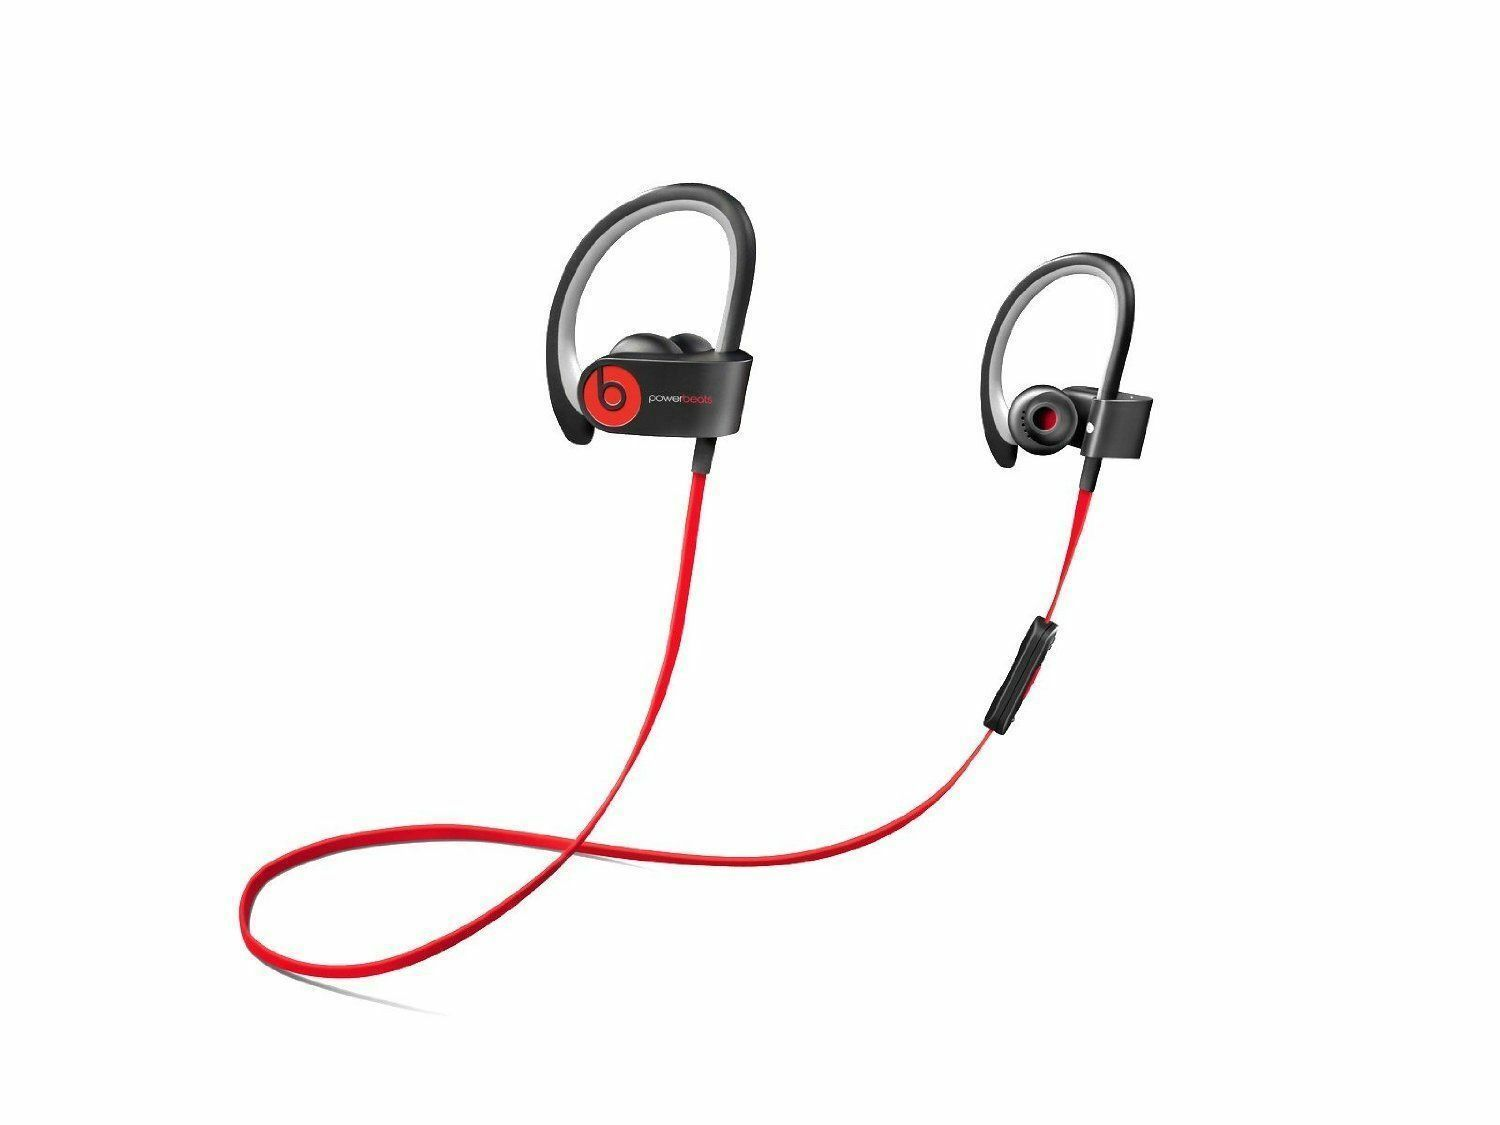 HTC Desire 320 Bluetooth Headset In-Ear Running Earbuds IPX4 Waterproof with Mic Stereo Earphones CVC 6.0 Noise Cancellation works with Apple Samsung,Google Pixel,LG